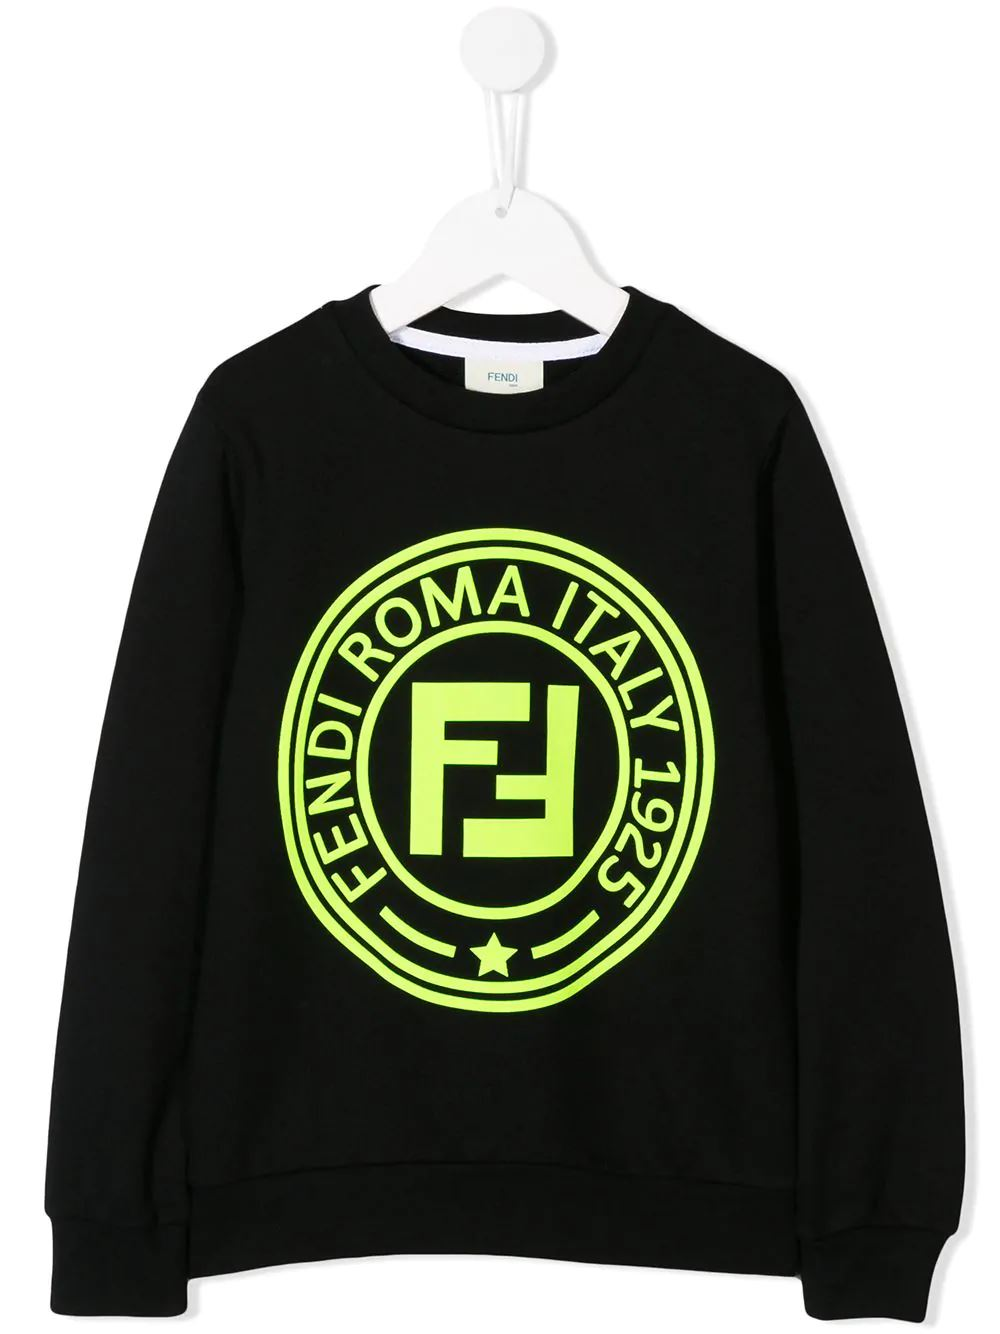 FENDI KIDS printed logo sweatshirt black - Maison De Fashion